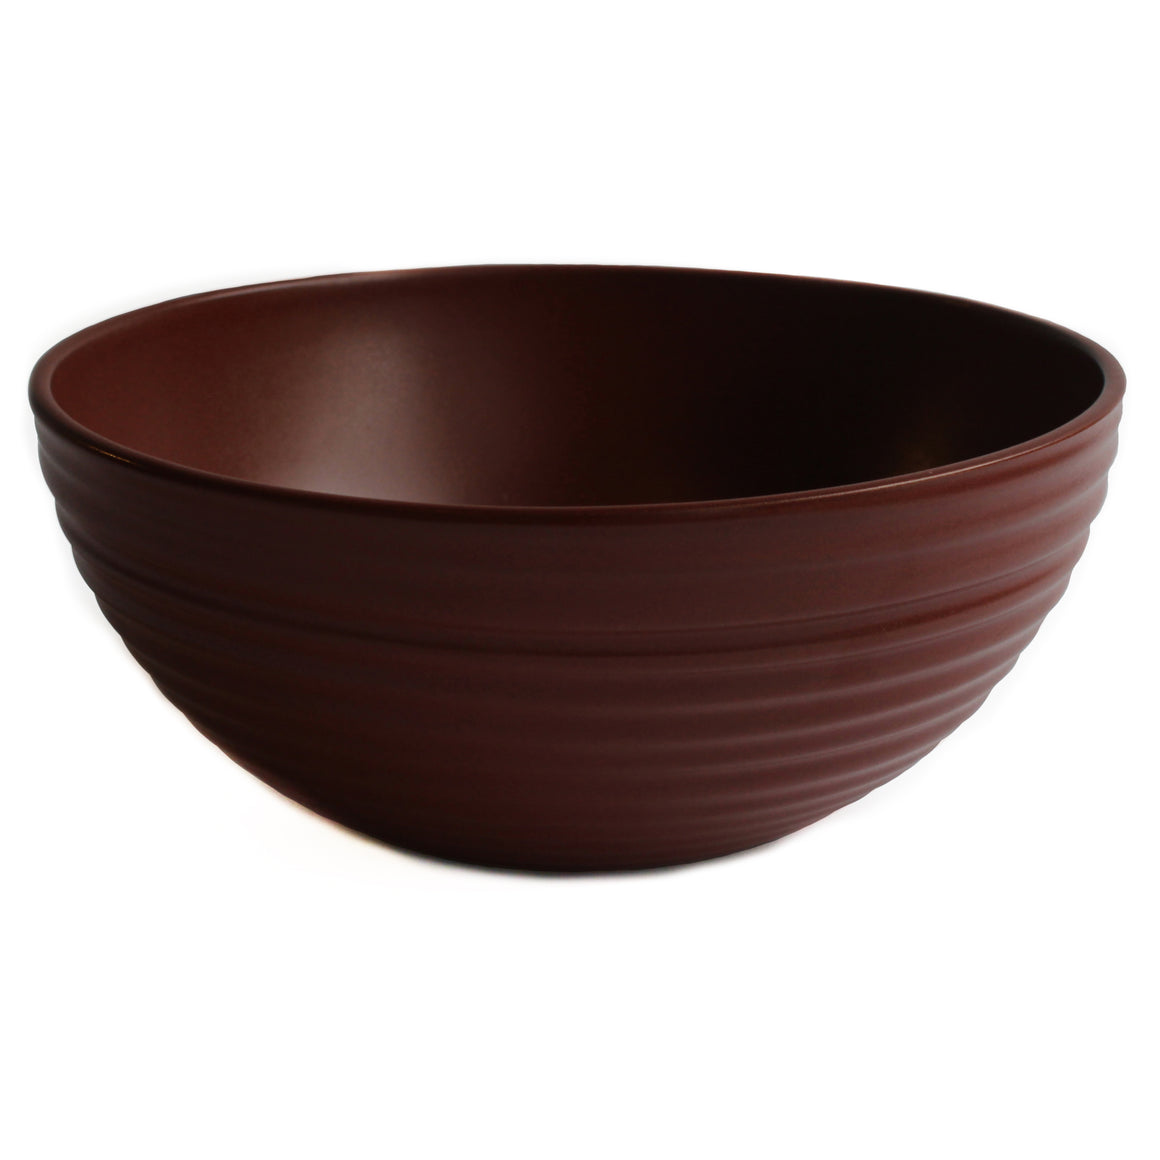 Terracotta Large Bowl